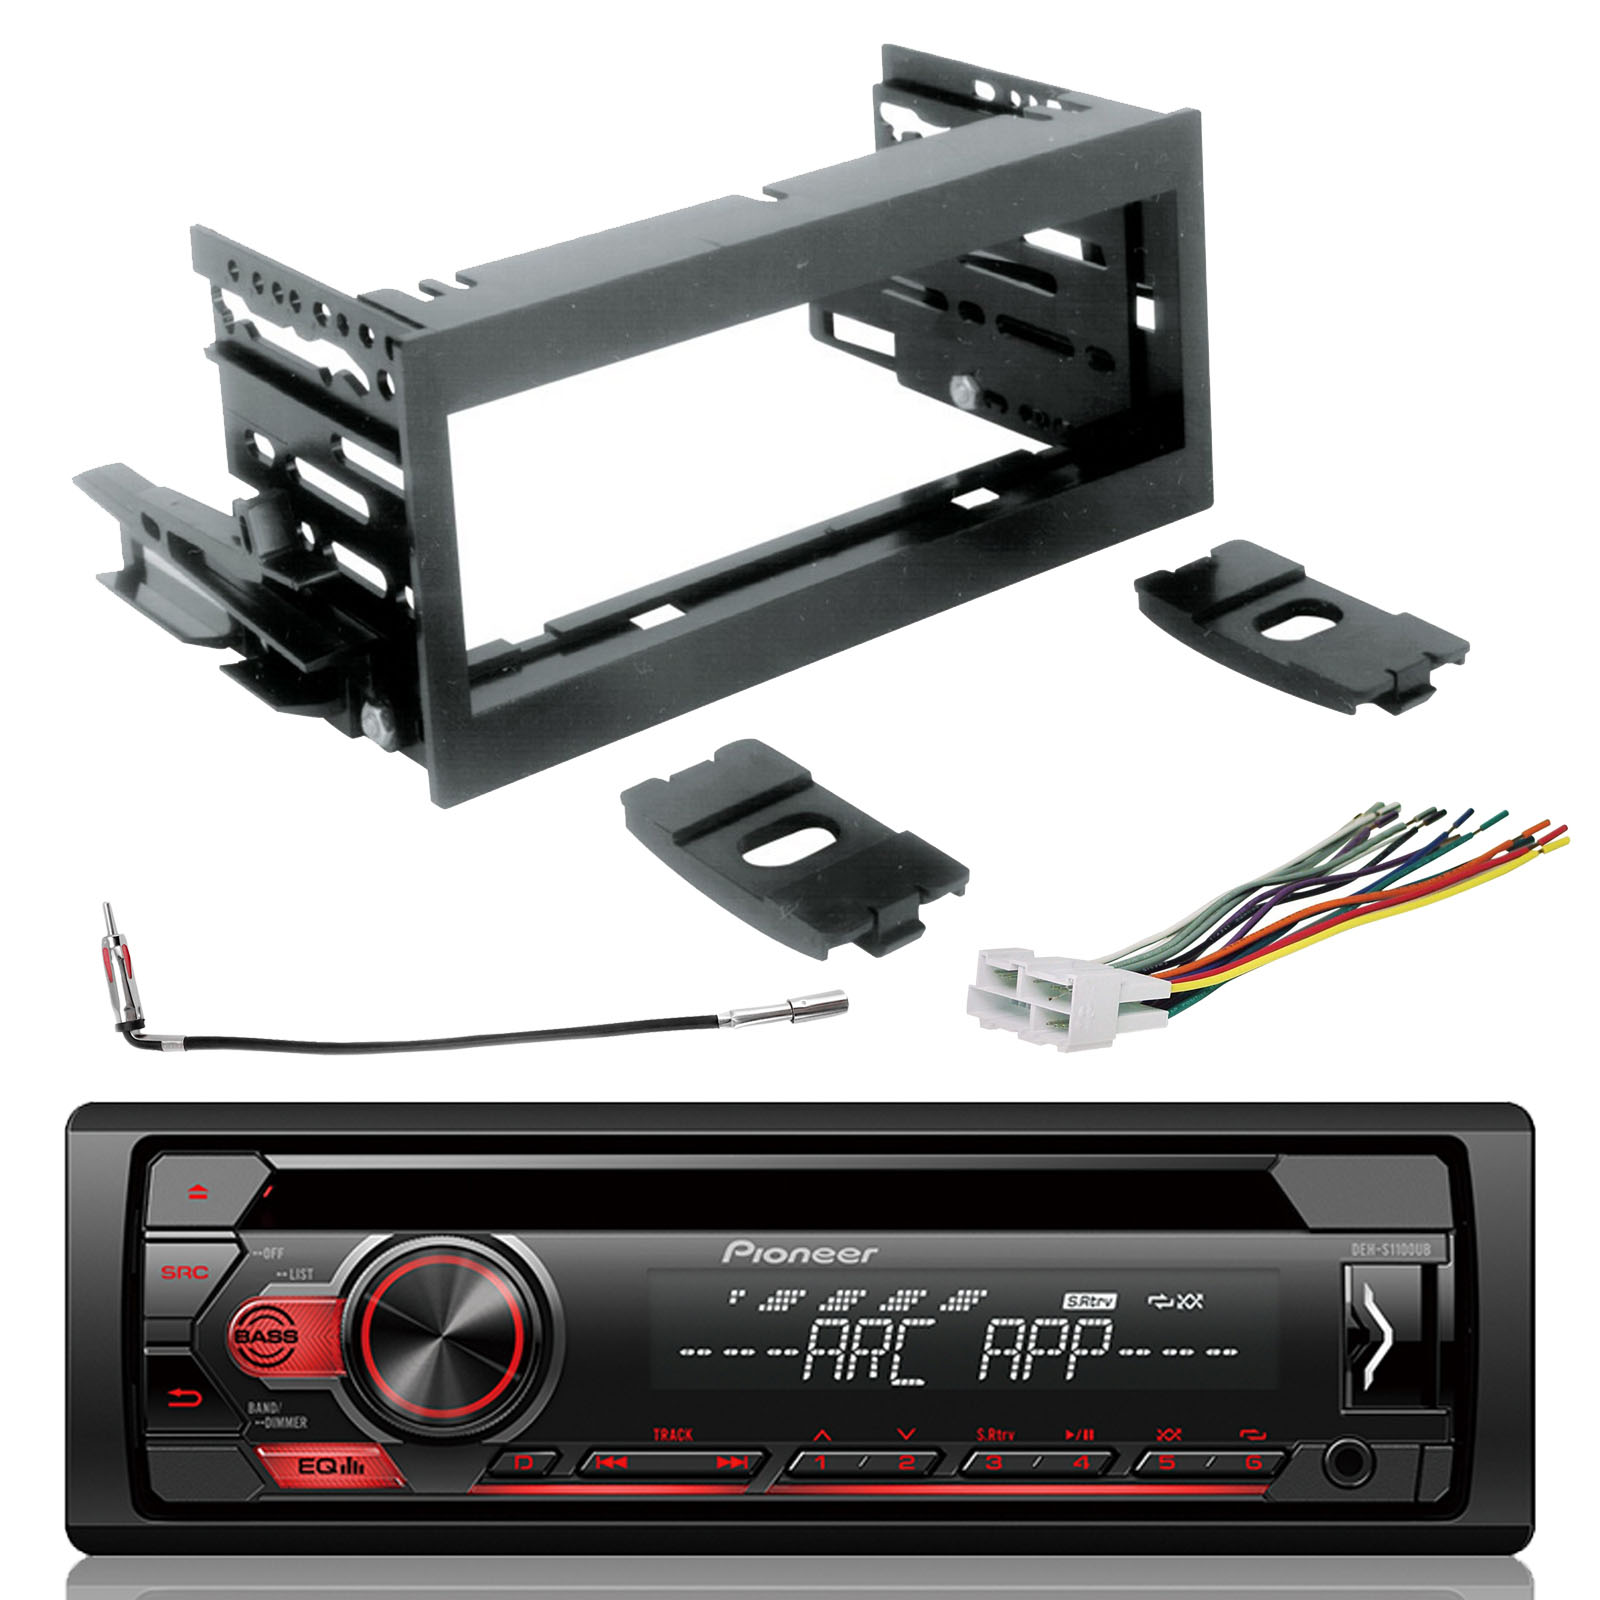 Pioneer DEH-S1100UB CD Single-DIN AM/FM Car Stereo, Scosche GM1483B on chevy trailblazer stereo harness adapters, stereo wiring harness kit, car stereo adapters, stereo wiring harness color codes, car audio harness adapters, radio harness adapters,